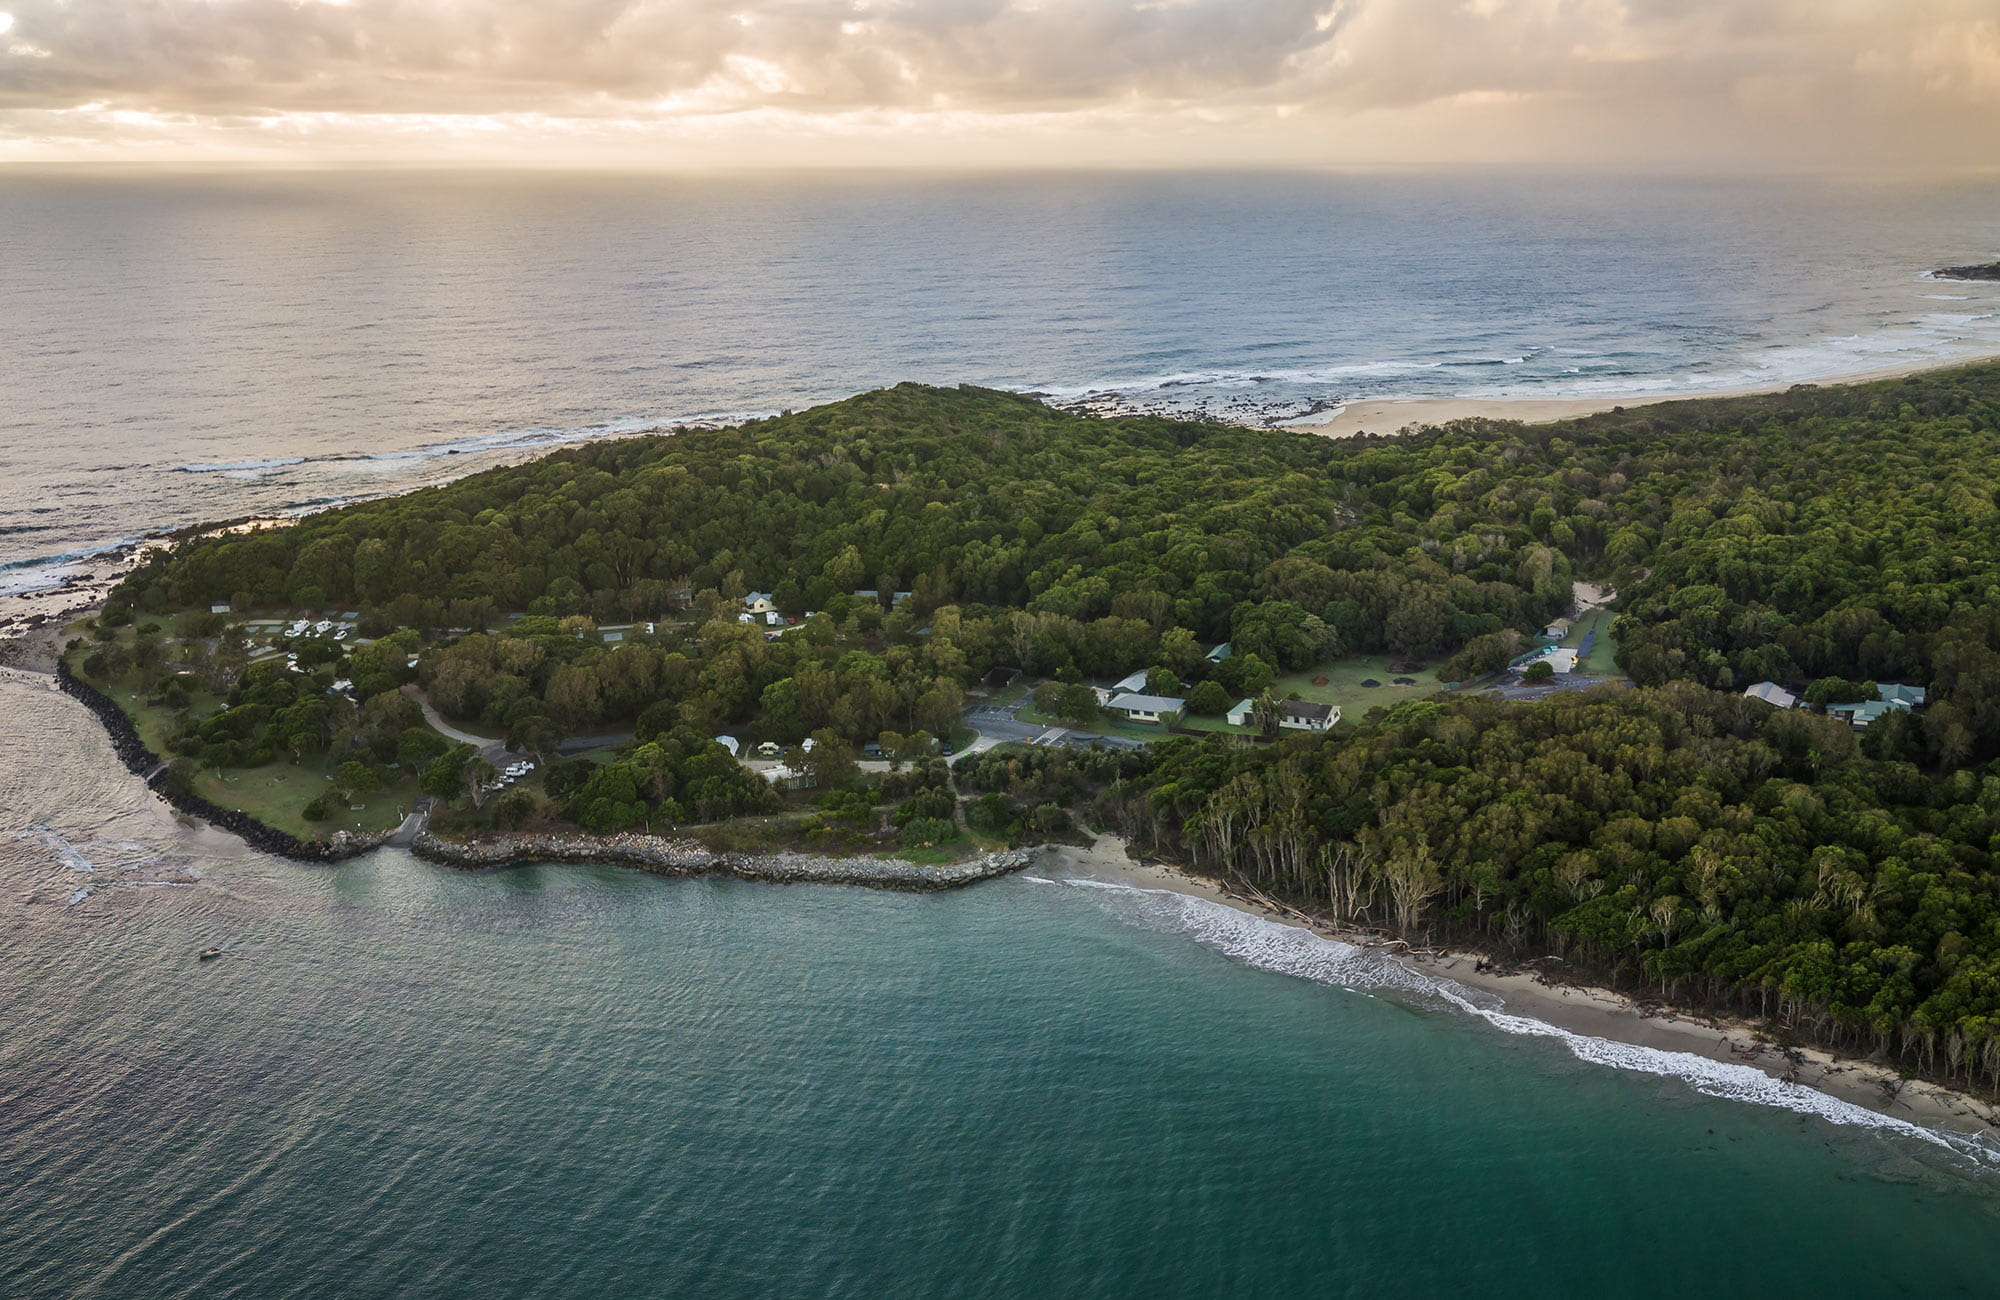 Aerial view of Woody Head, Iluka, Bundjalung National Park. Photo: J Spencer/OEH